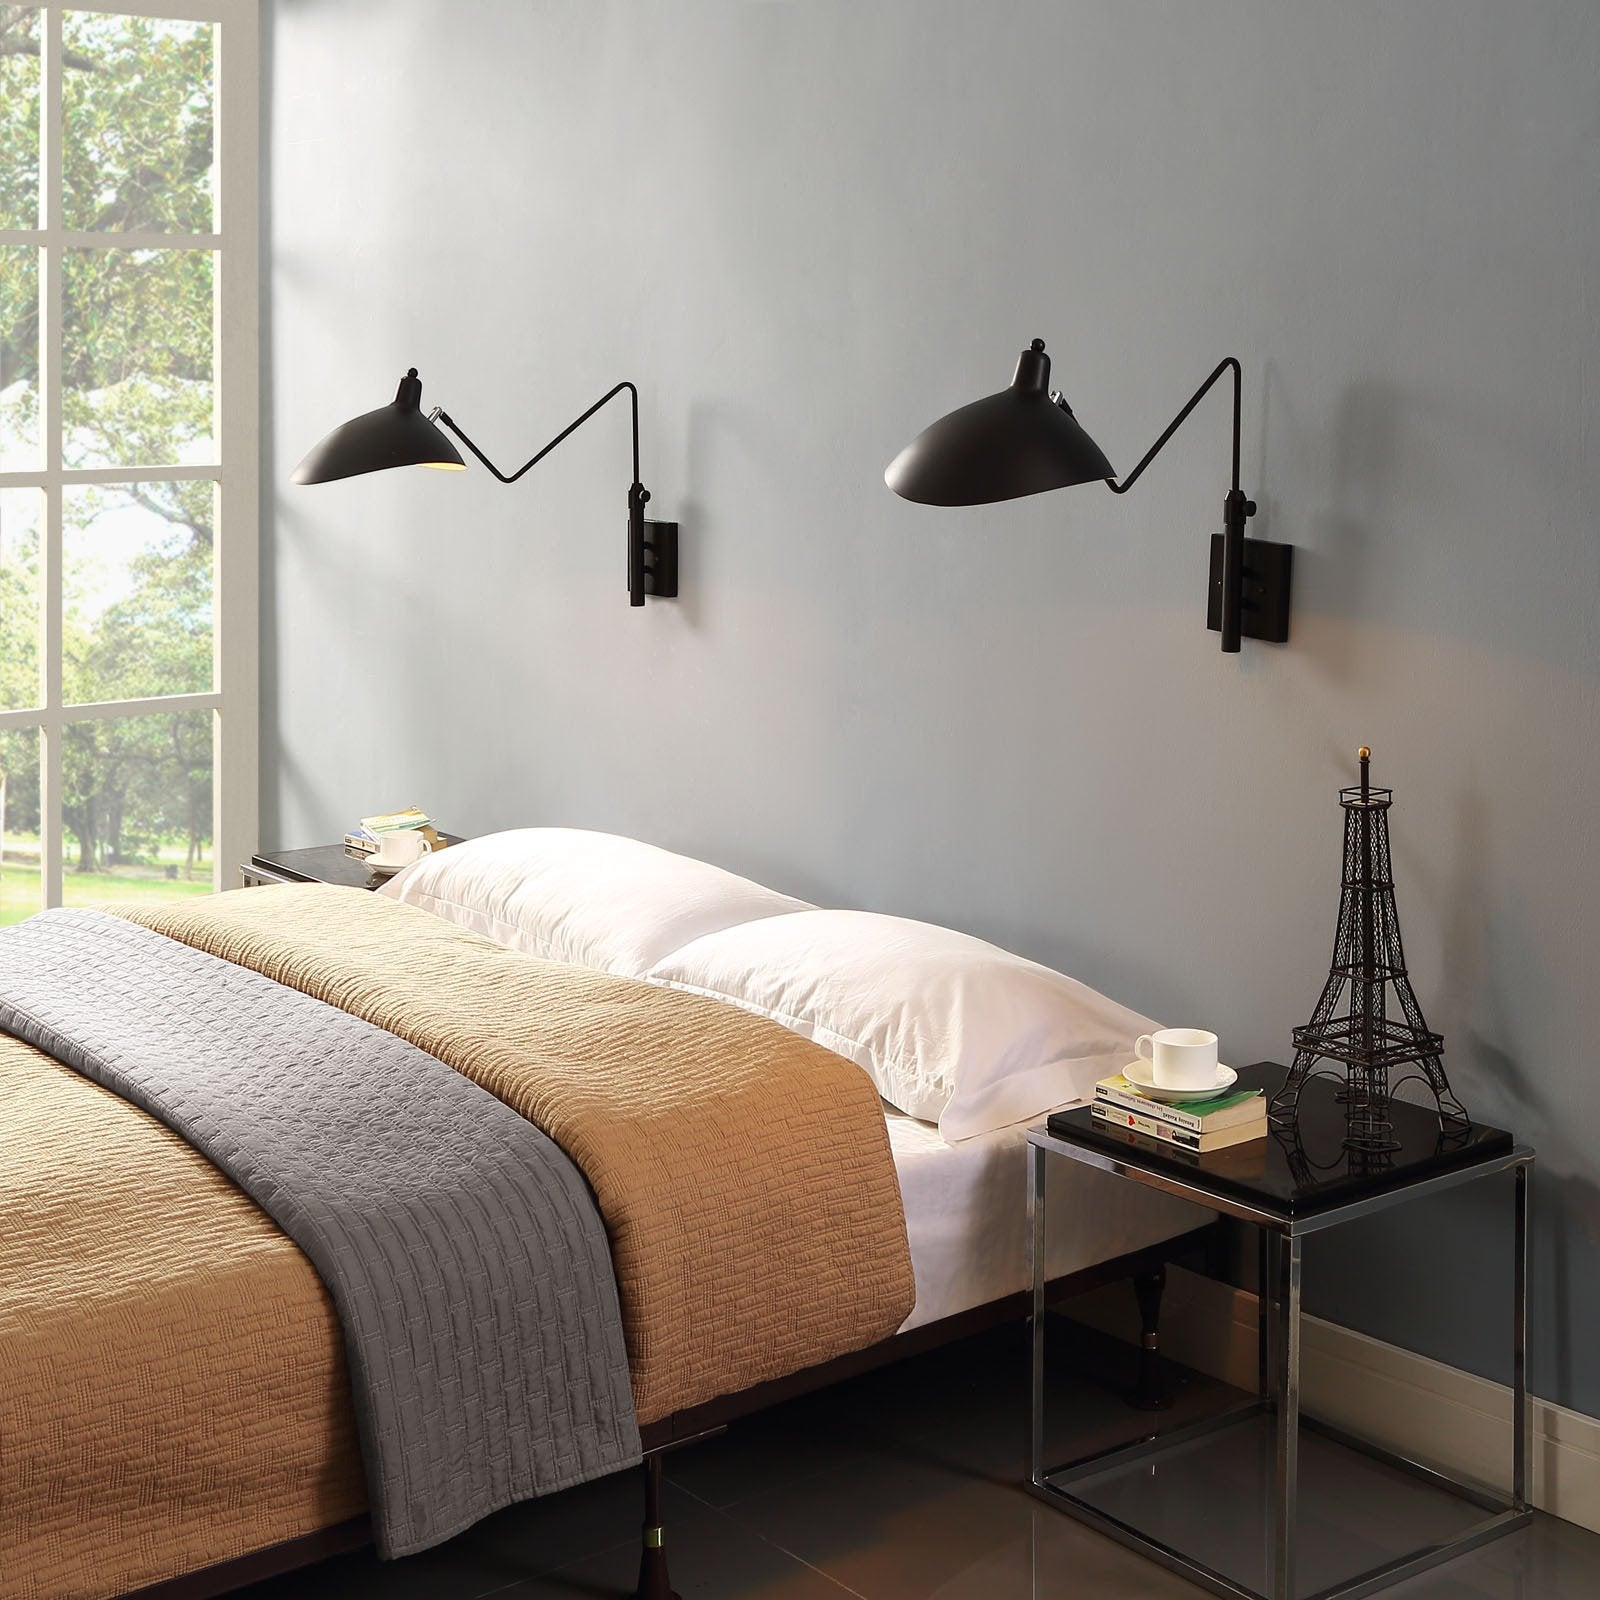 Serge Mouille Style Wall Lamp/Sconce   EMFURN